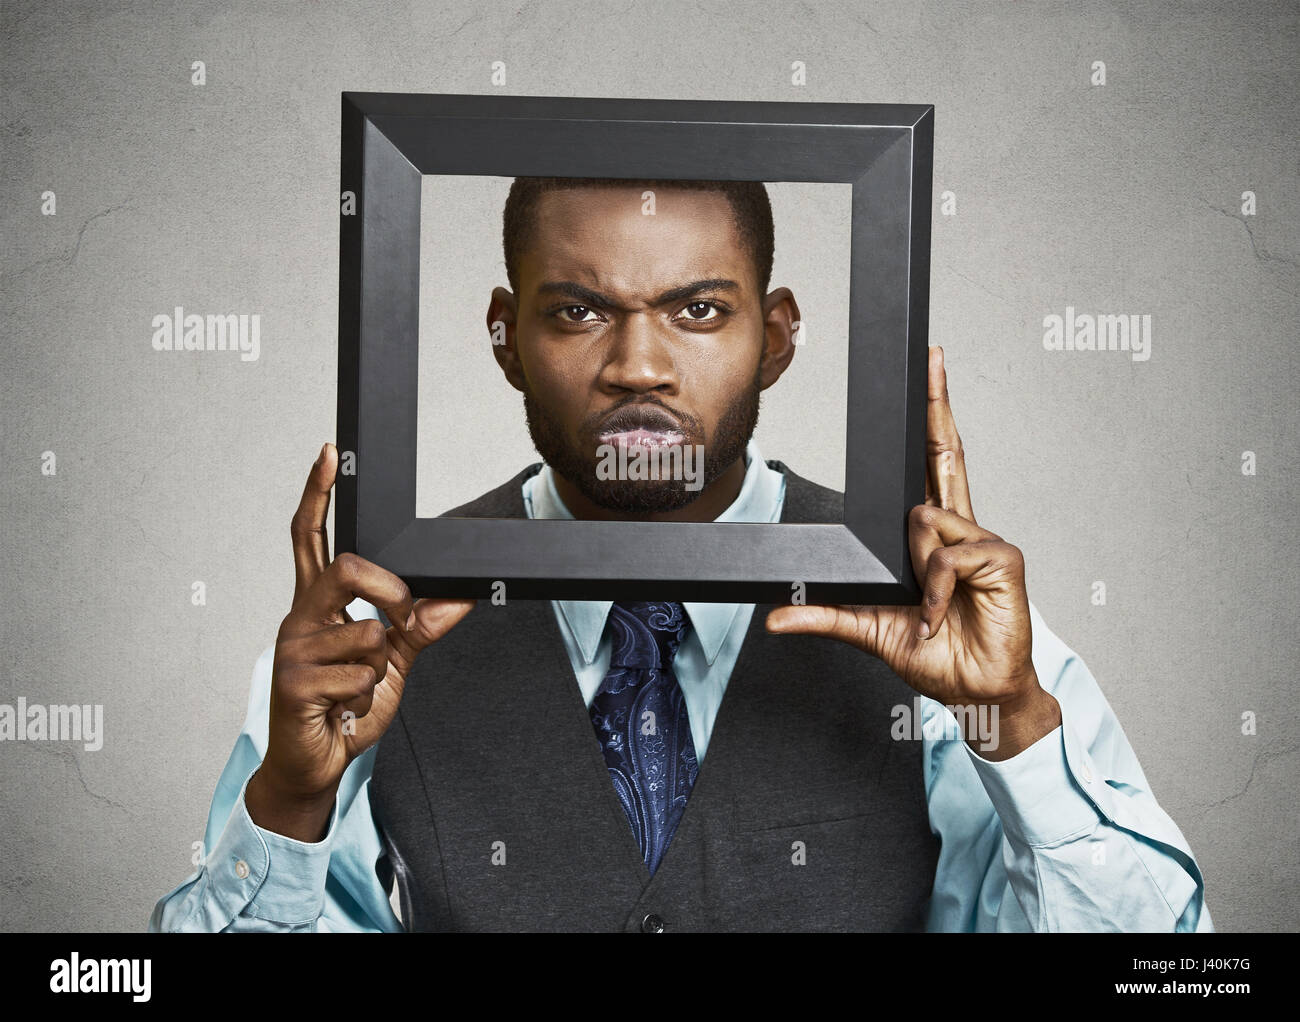 Closeup portrait businessman executive looking curious surprised confused skeptical through black picture frame - Stock Image